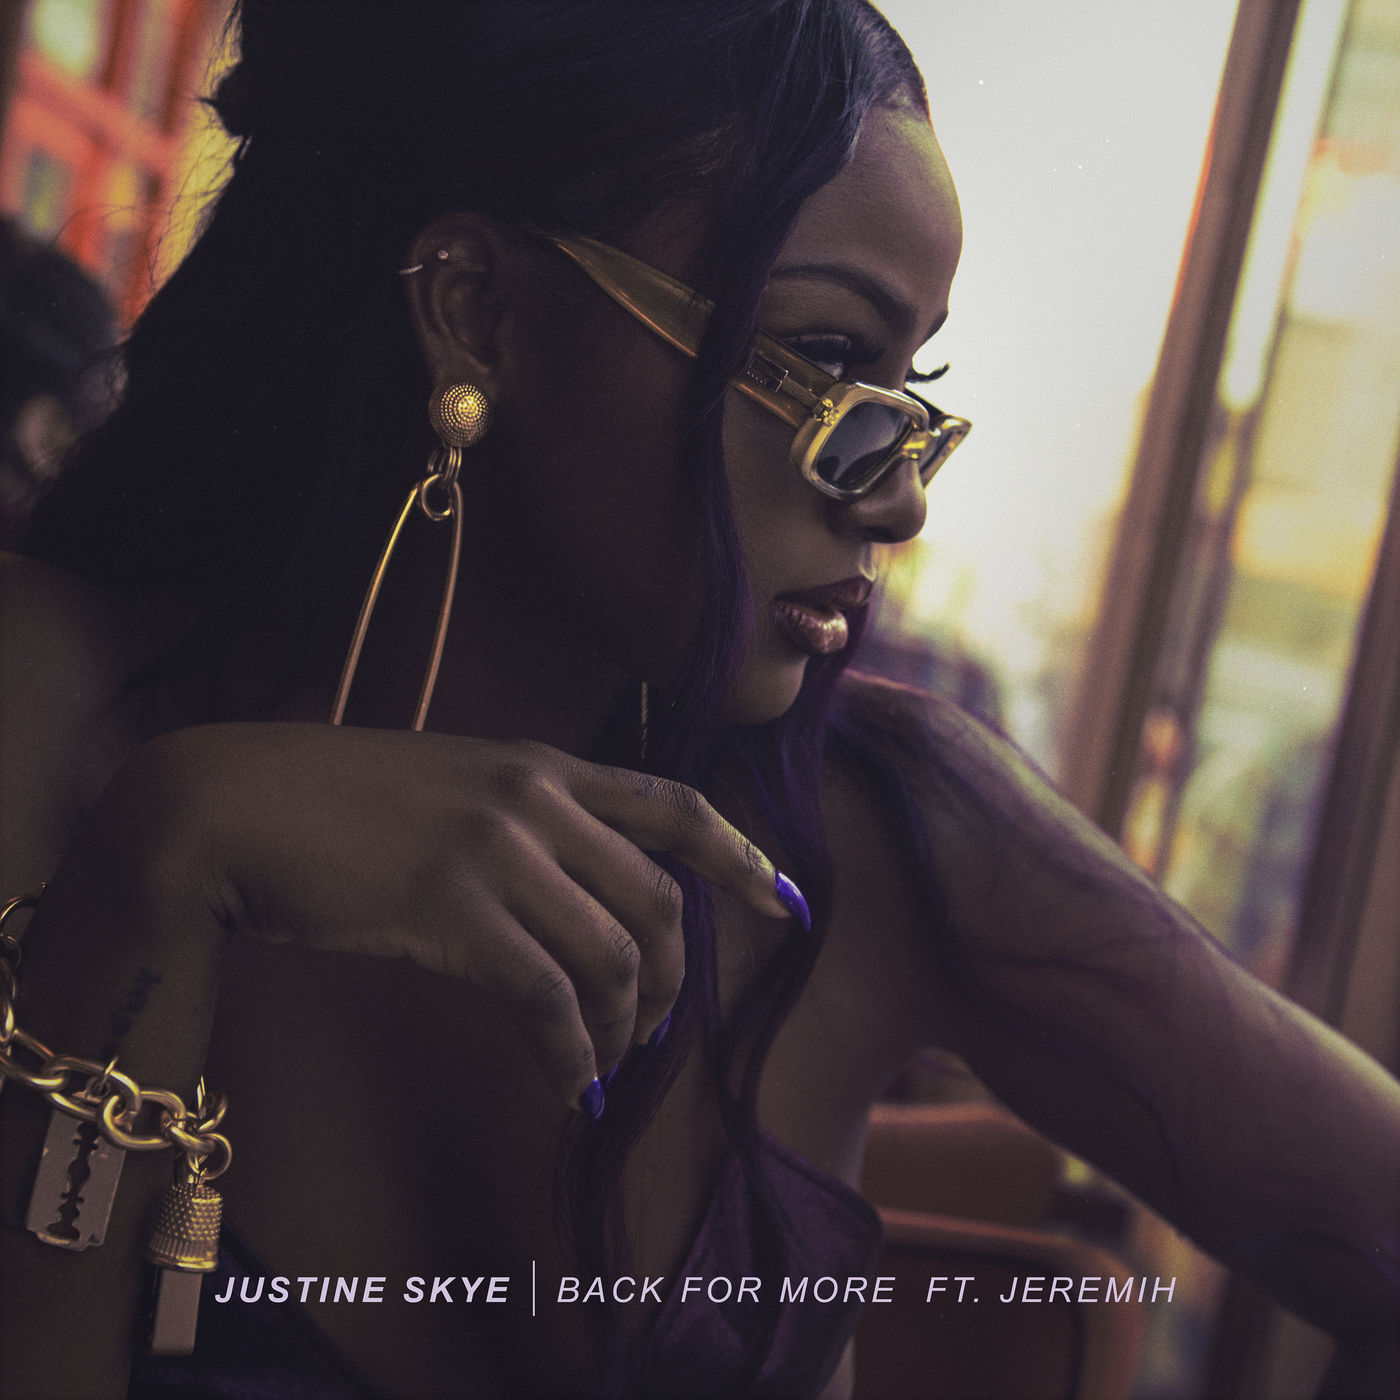 justine skye back for more